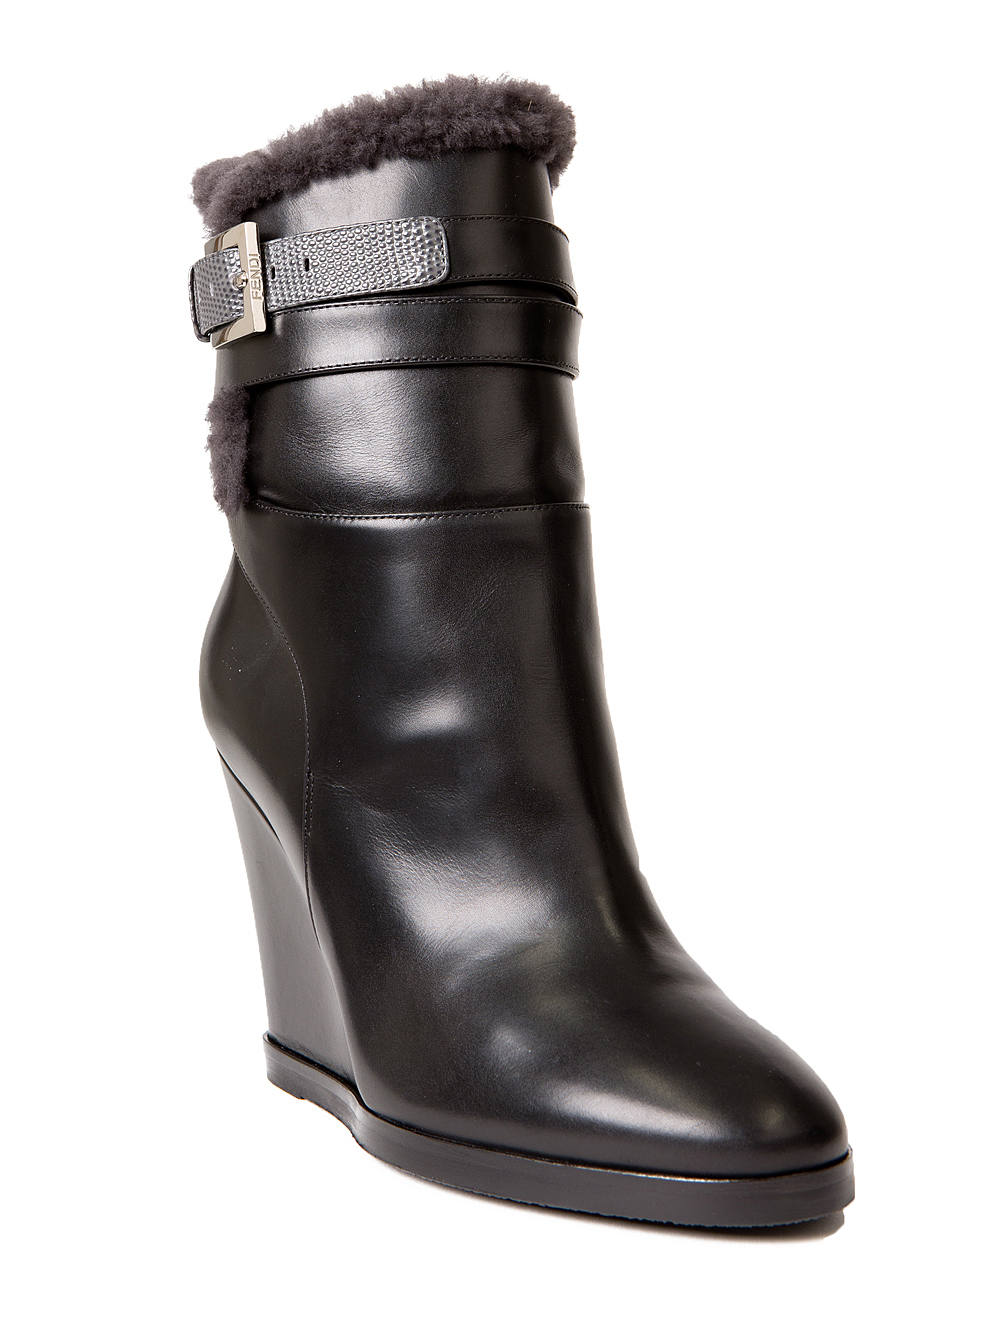 cheap sale release dates Fendi Shearling Wedge Boots free shipping pictures discount from china ixPRNCoA